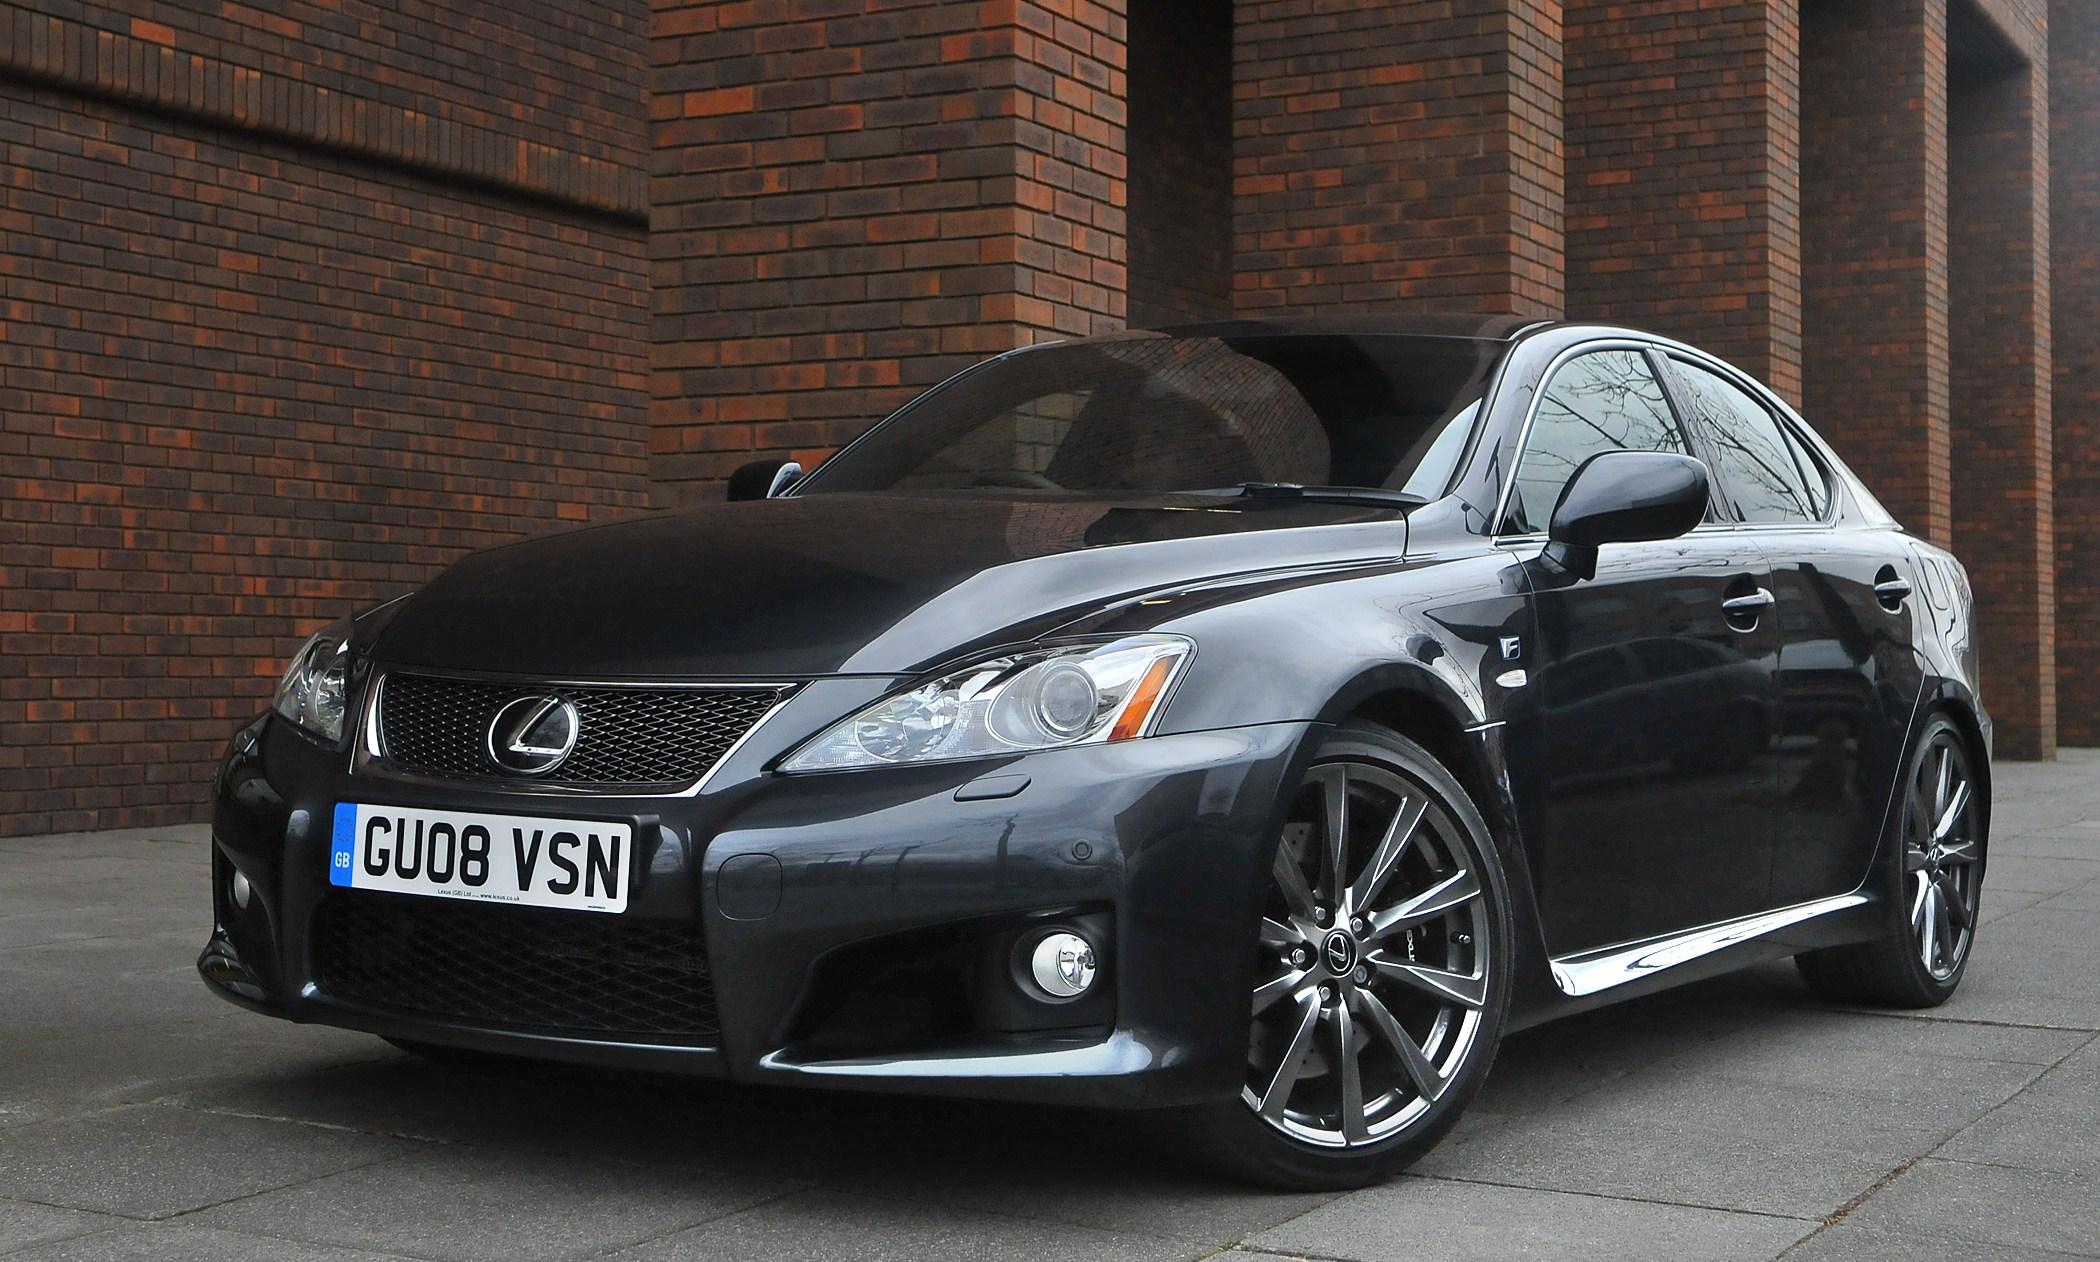 Lexus New Model >> 2012 Lexus IS-F Price - €70 600